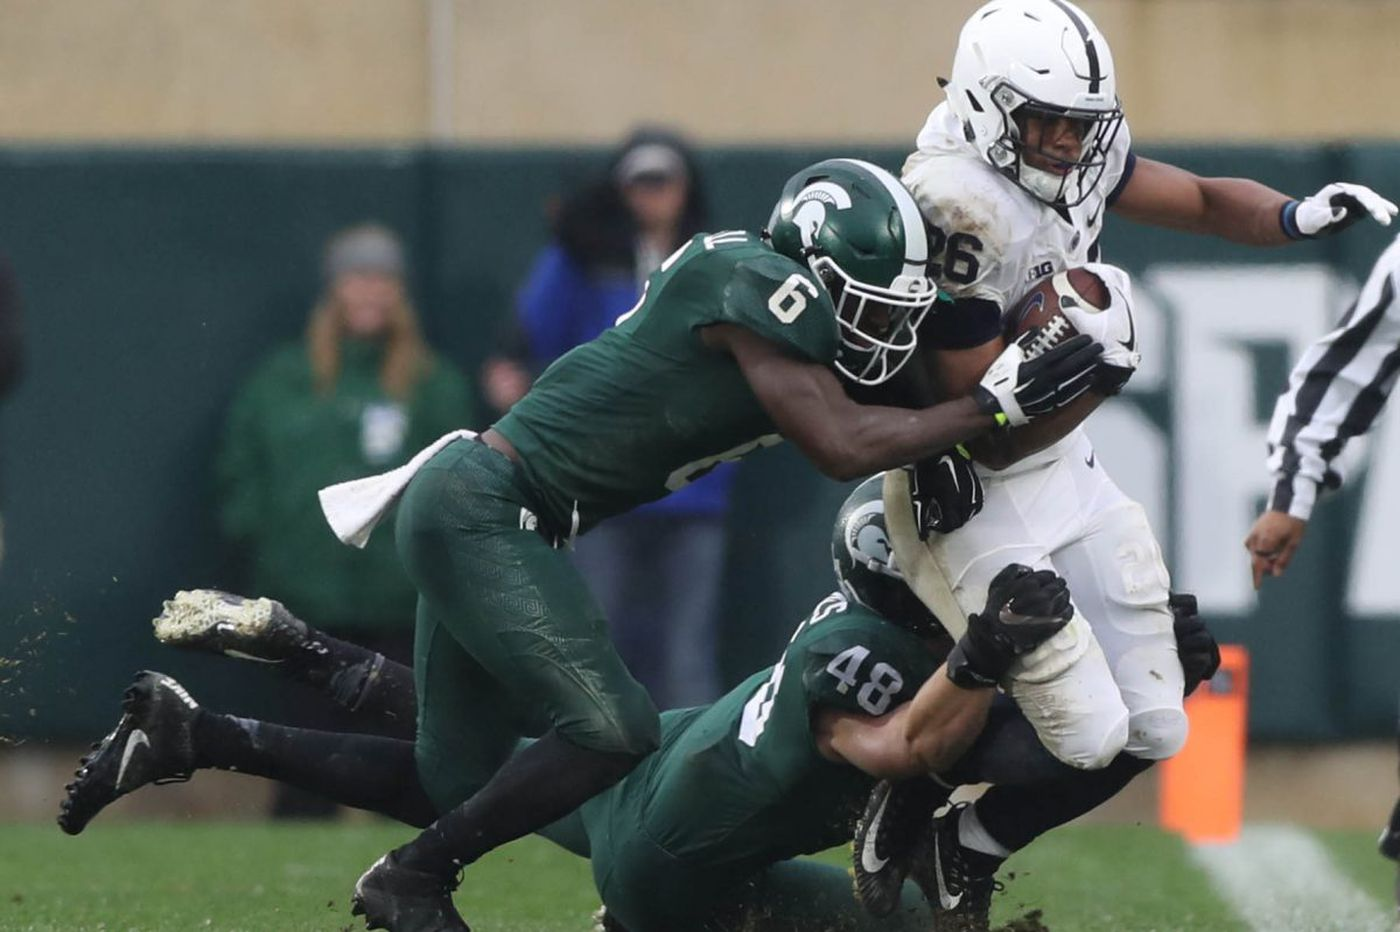 College football recap: Penn State loses another close road game, Penn tops Princeton